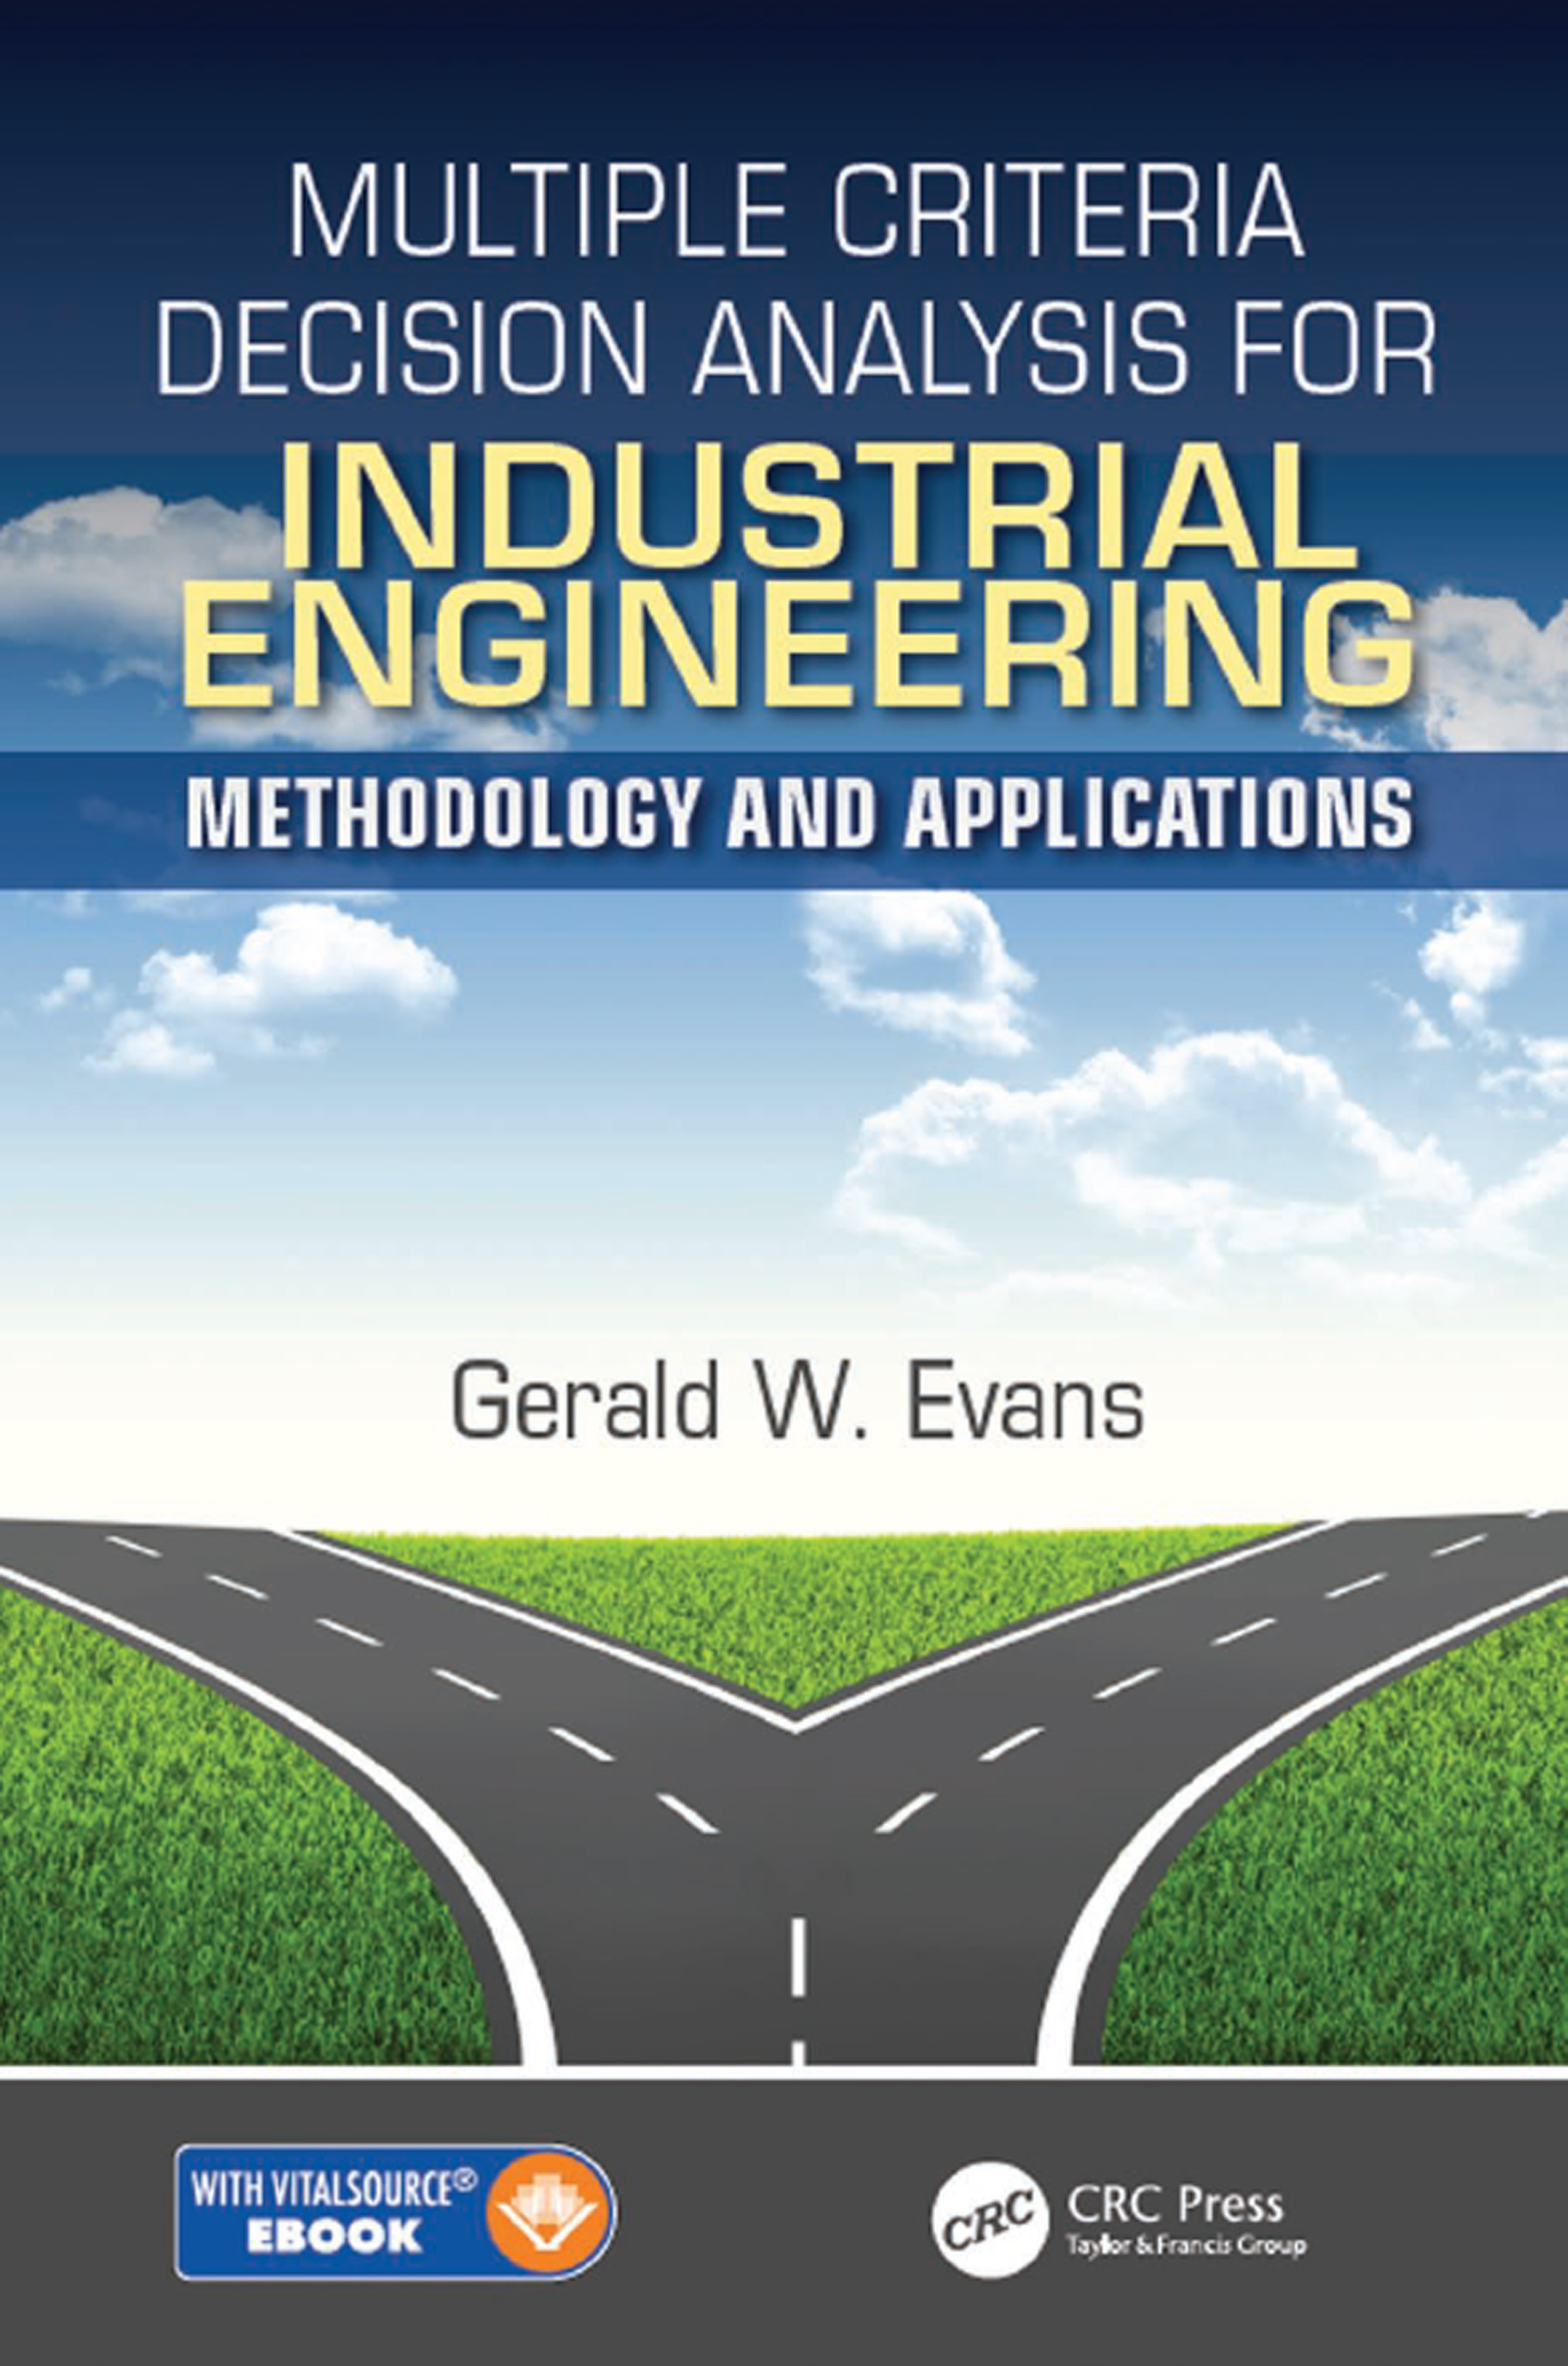 Multiple Criteria Decision Analysis for Industrial Engineering: Methodology and Applications book cover